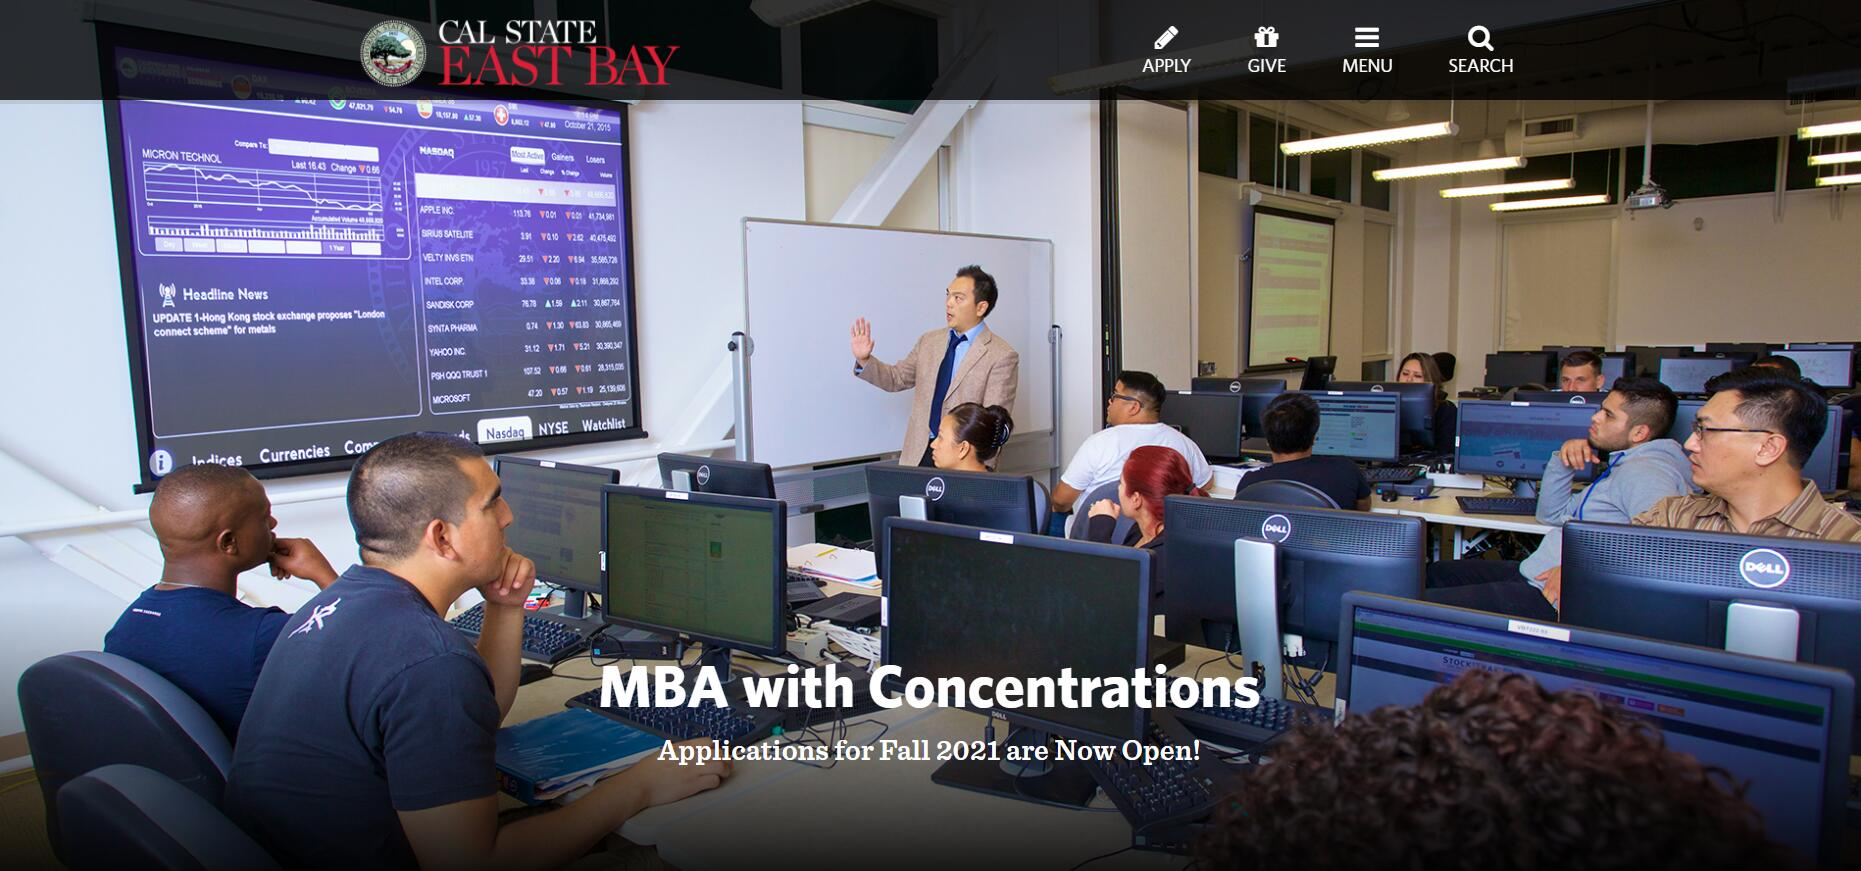 CSUEB MBA with Concentrations